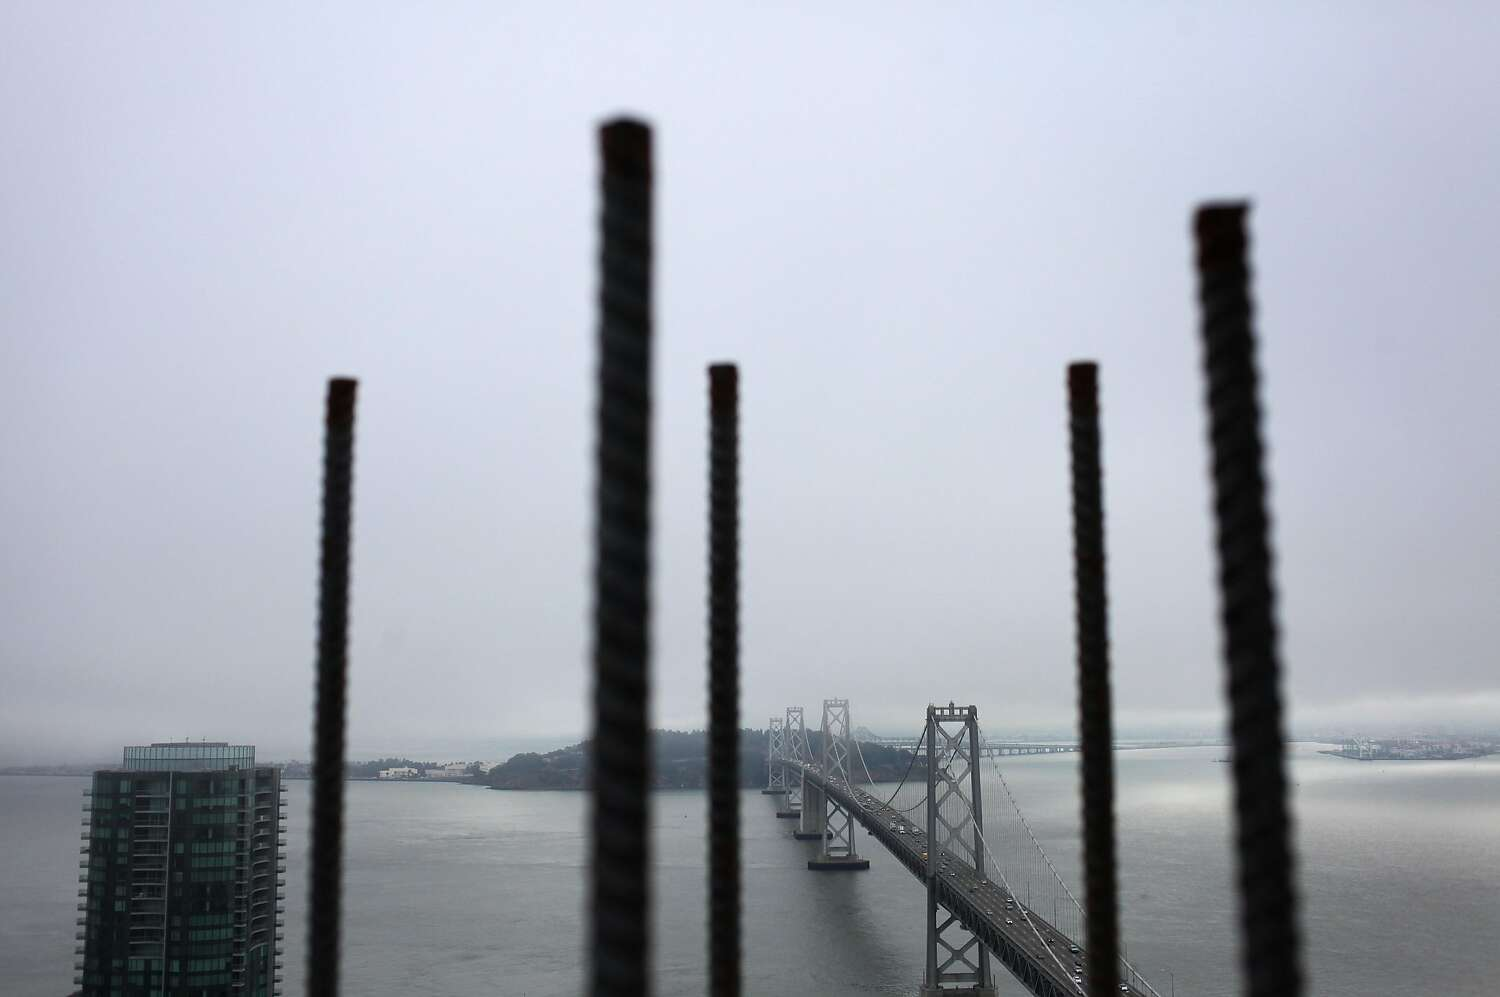 Rebar frames the Bay Bridge as seen from atop One Rincon Hill Phase Two on July 25, 2013